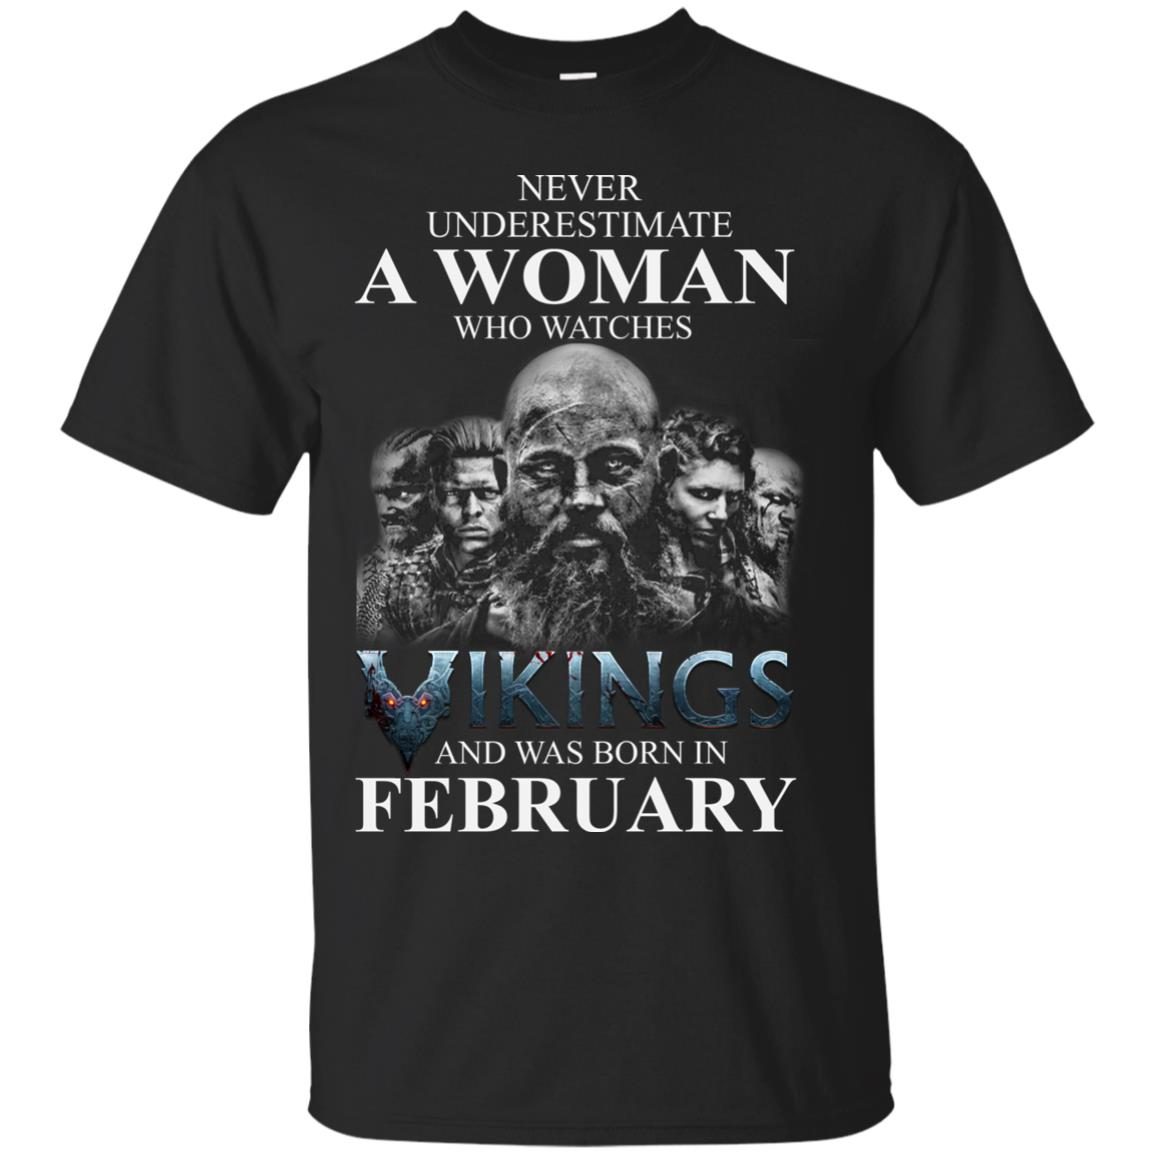 image 1339 - Never Underestimate A woman who watches Vikings and was born in February shirt